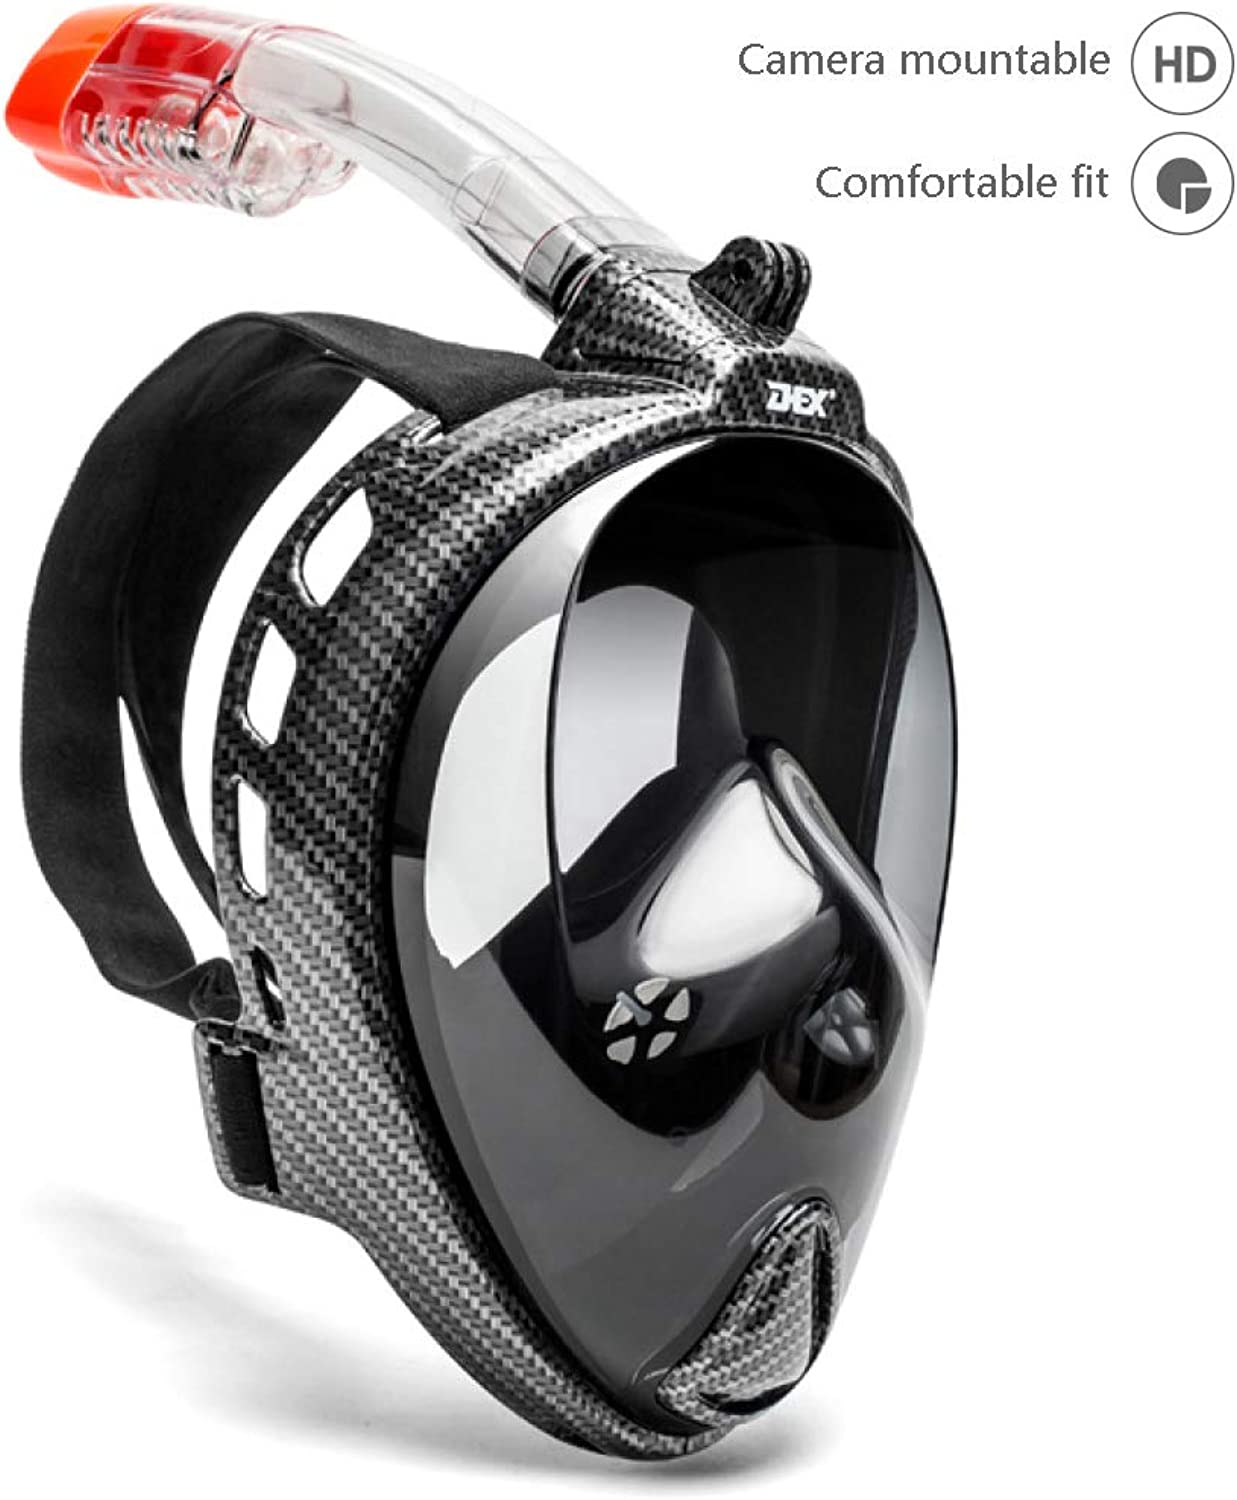 Snorkeling Mask Full Face for Adult Kids, HD Mirror Panoramic 180° View Diving Mask, AntiFog AntiLeak Easy Breathe,with Action Camera Slot